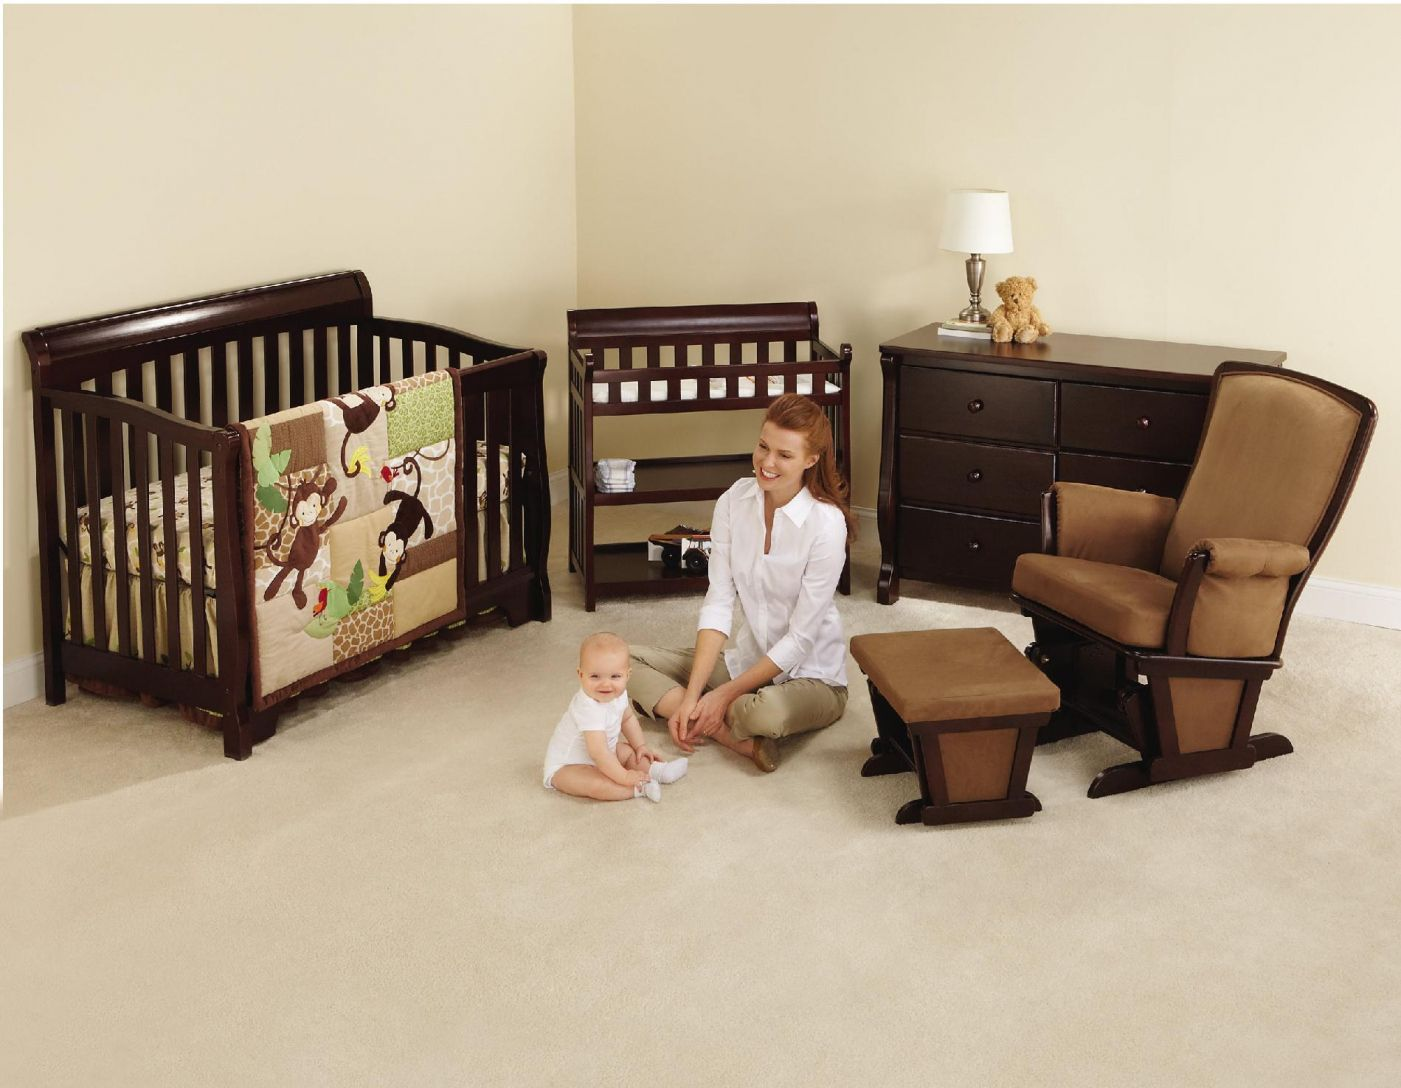 Sears Baby Furniture Bundles - Lowes Paint Colors Interior Check ...